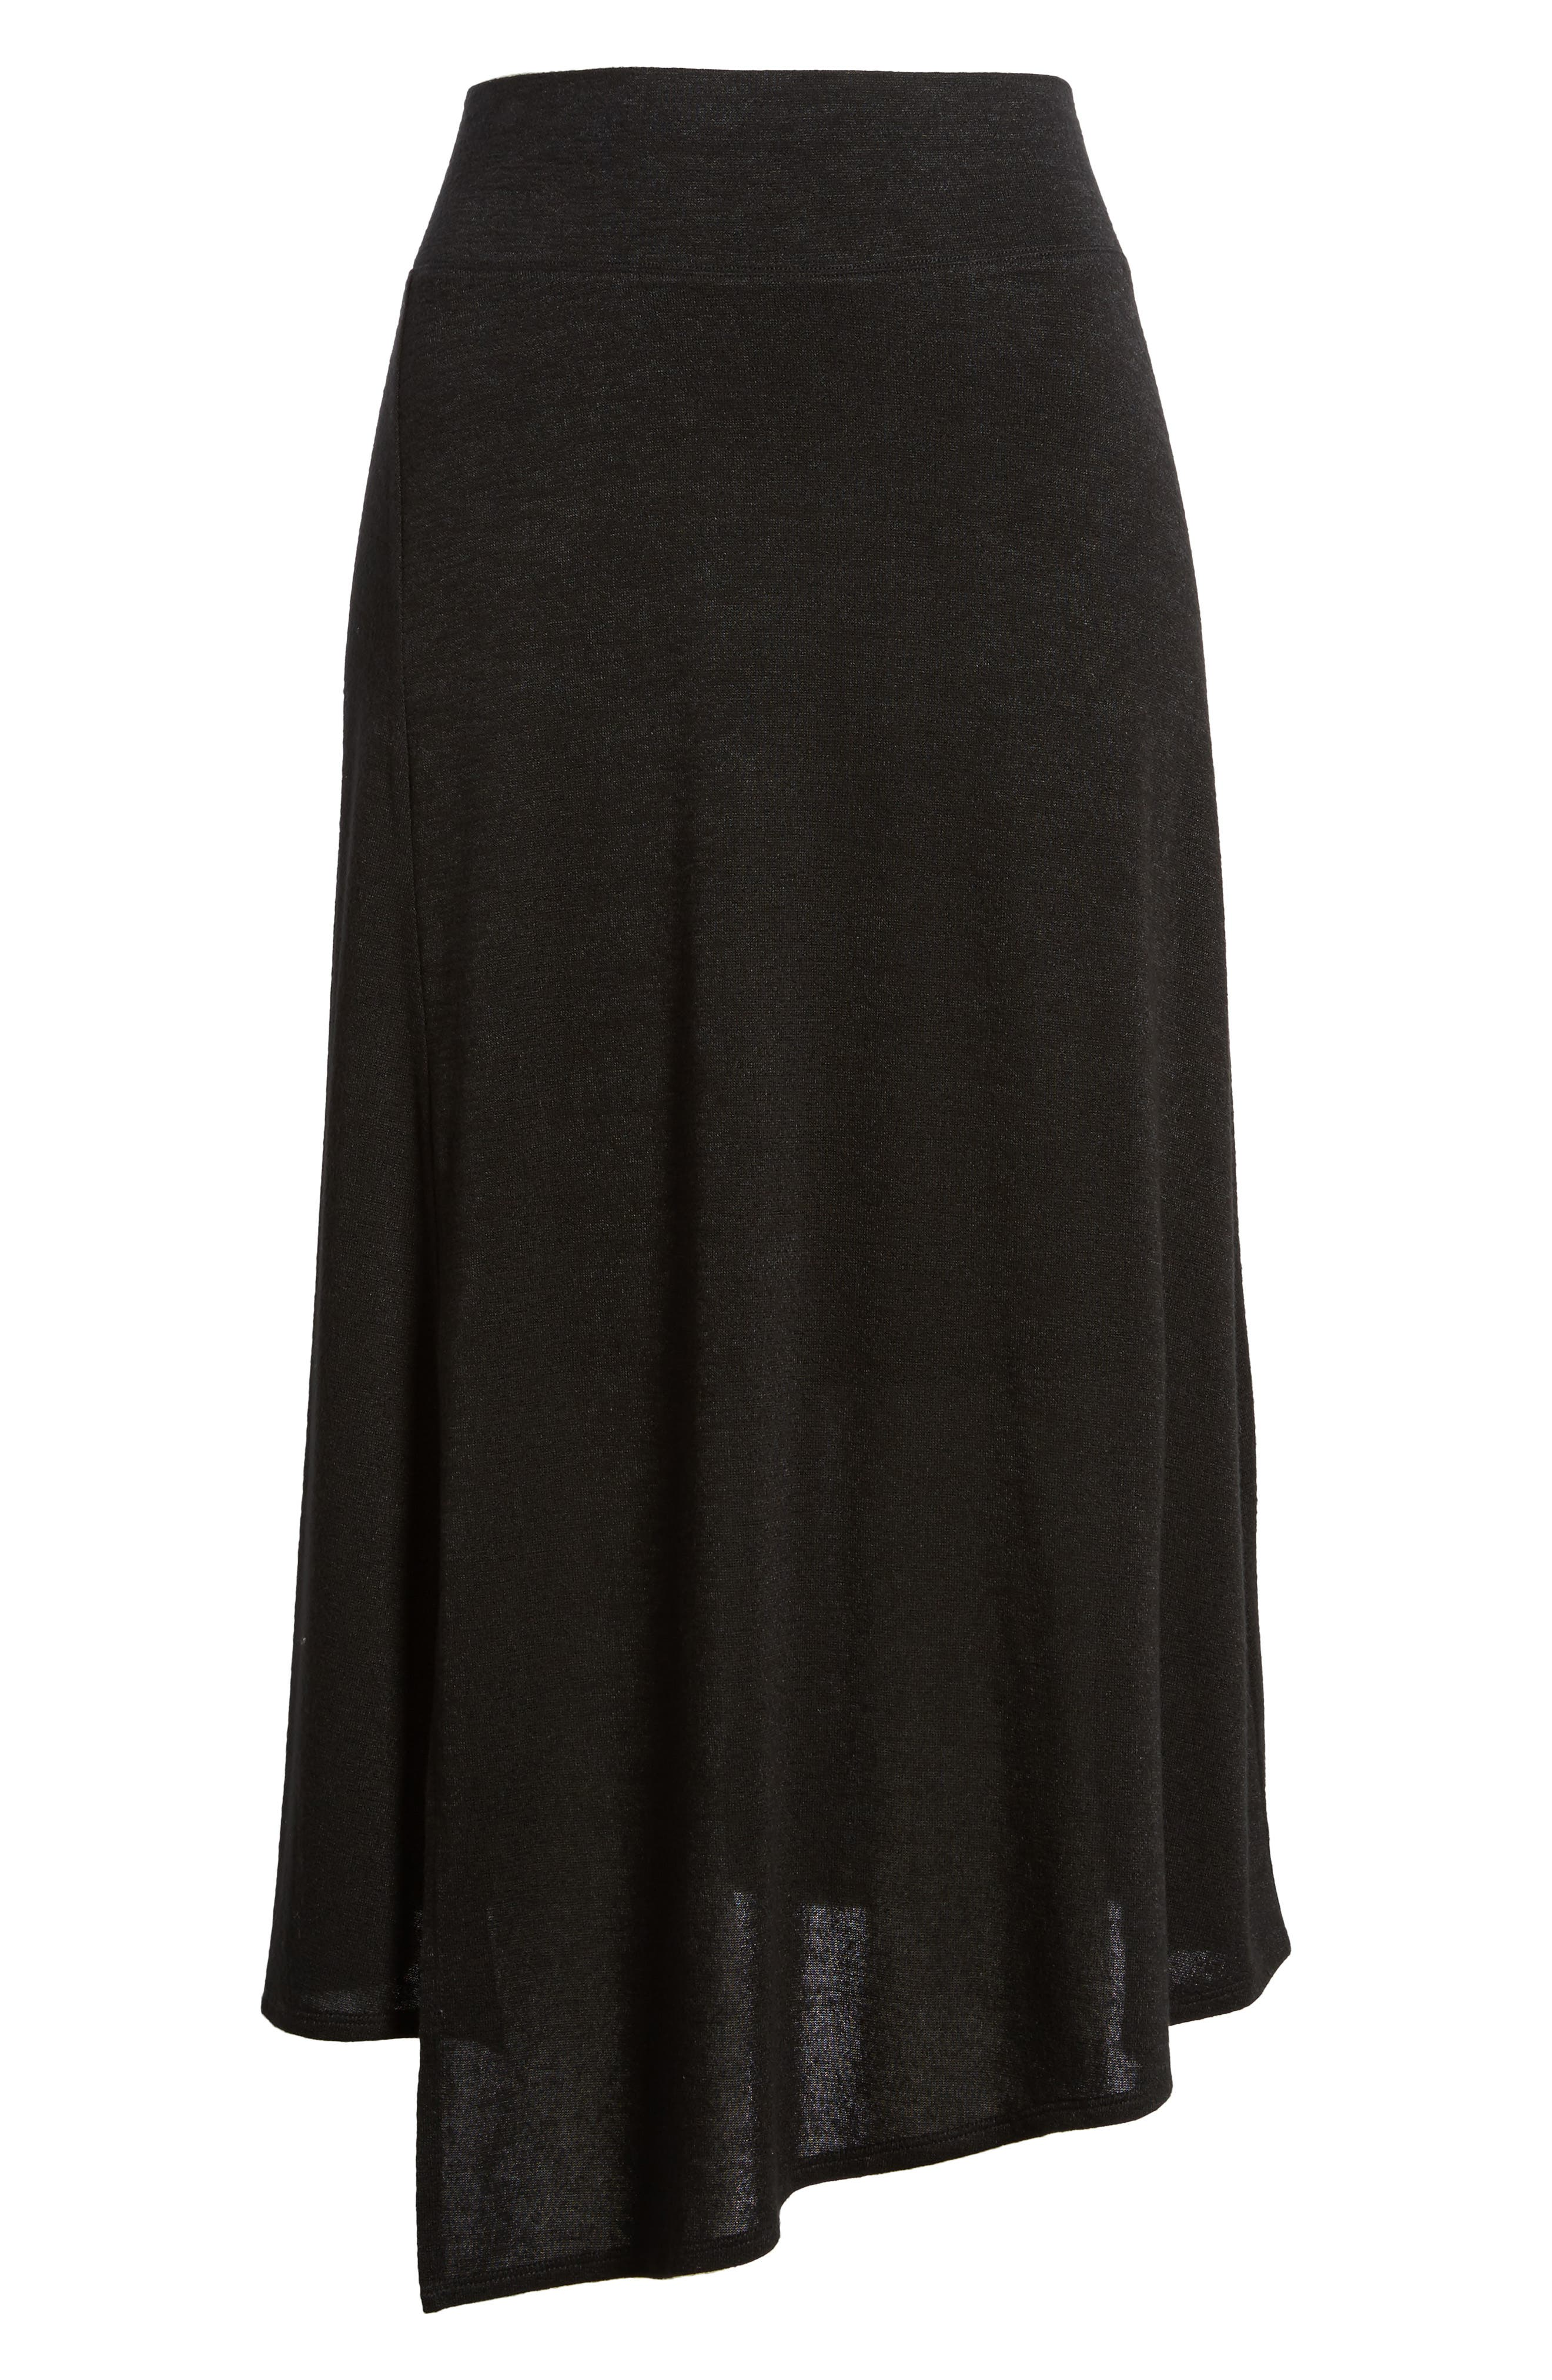 Nic + Zoe Every Occasion Faux Wrap Skirt,                             Alternate thumbnail 6, color,                             Black Onyx